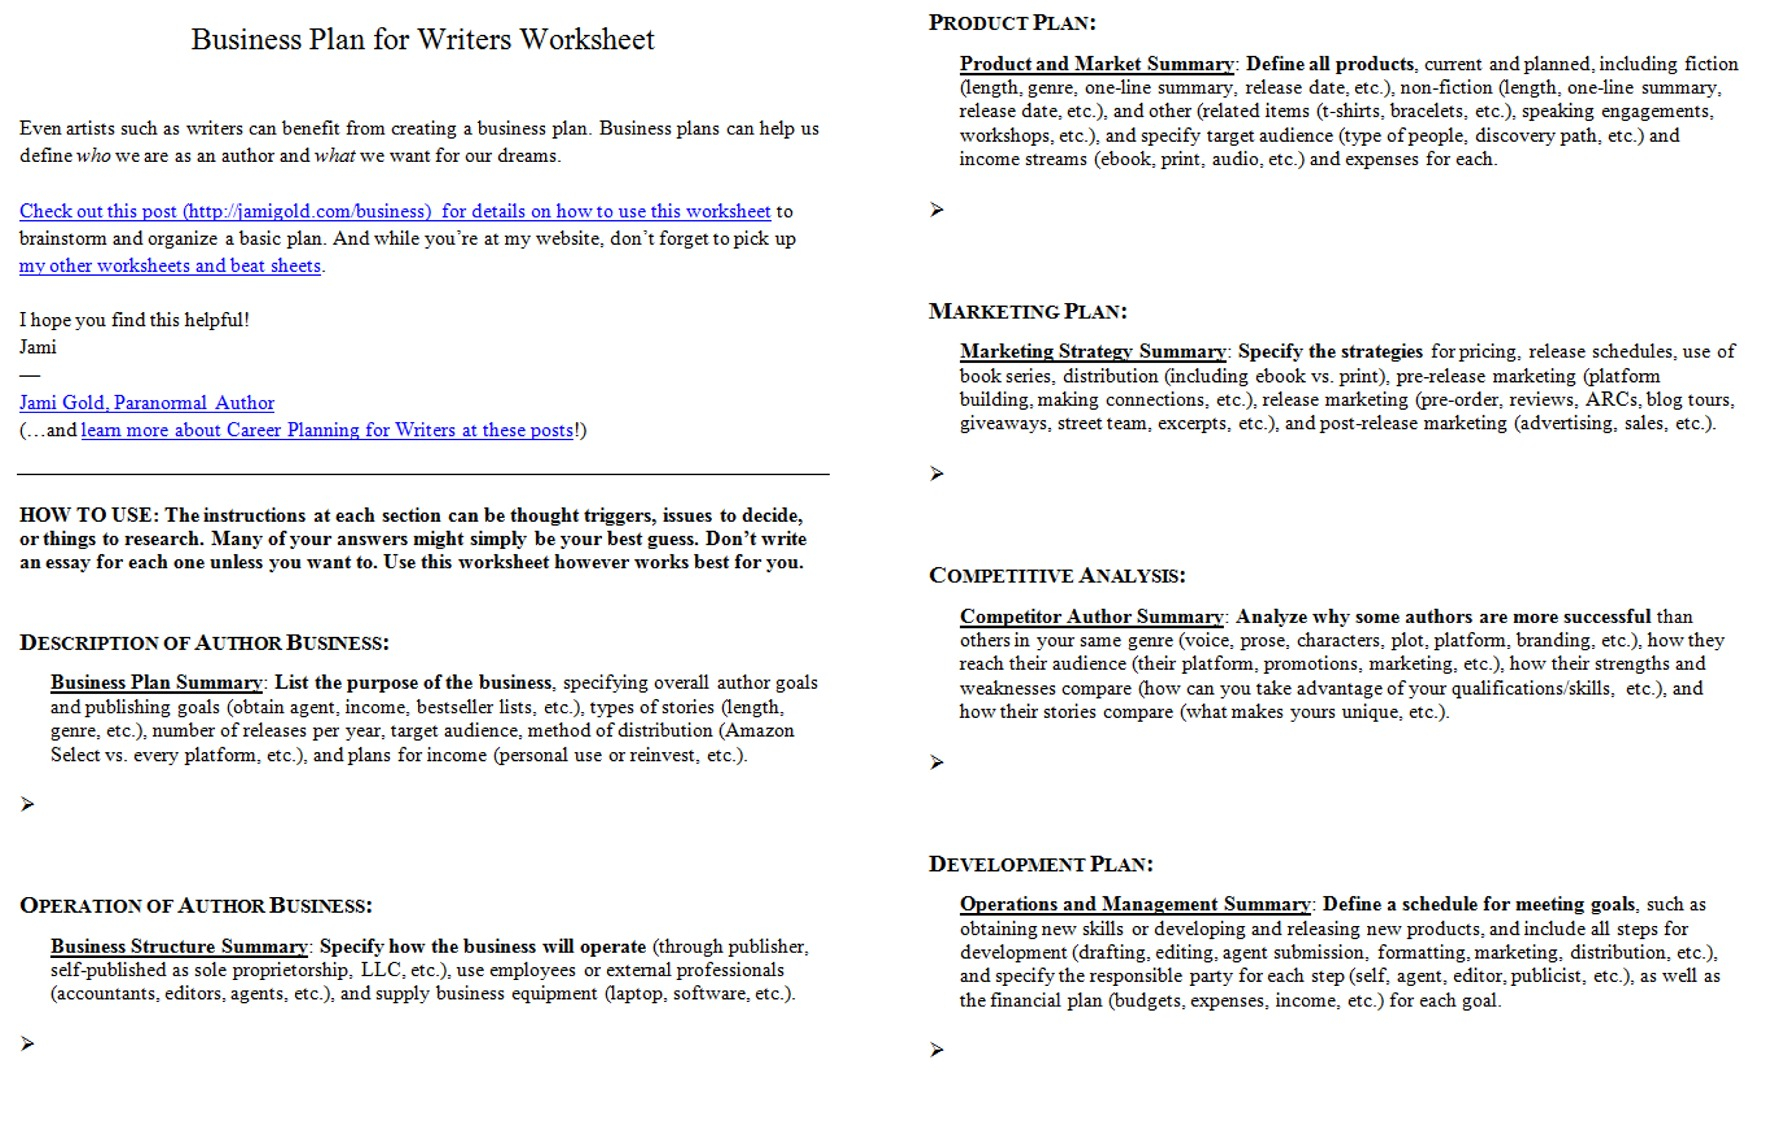 Aldiablosus  Wonderful Worksheets For Writers  Jami Gold Paranormal Author With Goodlooking Screen Shot Of Both Pages Of The Business Plan For Writers Worksheet With Divine Transitional Words And Phrases Worksheet Also Y Mx B Worksheet In Addition Grammar Worksheets For Th Grade And Volume Cylinder Worksheet As Well As Simple Subject Worksheets Additionally Theoretical And Experimental Probability Worksheet Answers From Jamigoldcom With Aldiablosus  Goodlooking Worksheets For Writers  Jami Gold Paranormal Author With Divine Screen Shot Of Both Pages Of The Business Plan For Writers Worksheet And Wonderful Transitional Words And Phrases Worksheet Also Y Mx B Worksheet In Addition Grammar Worksheets For Th Grade From Jamigoldcom